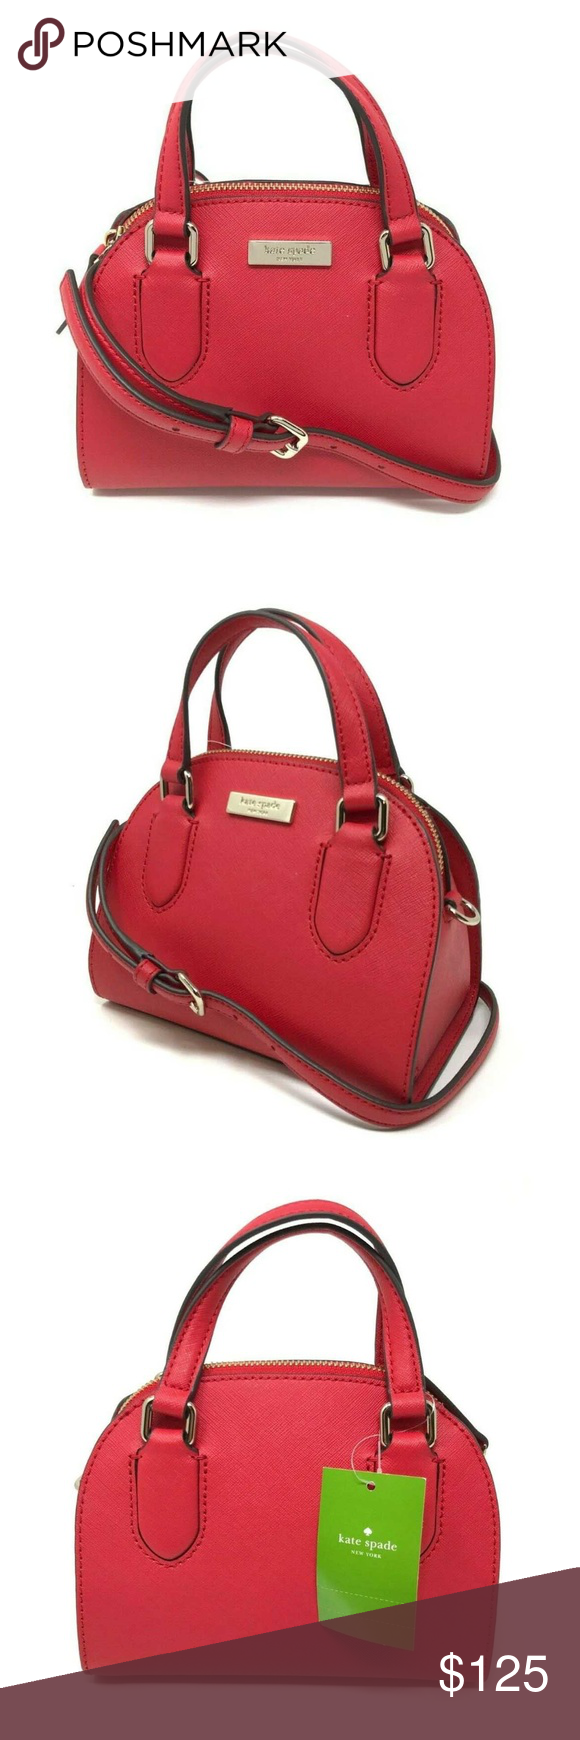 ad1c9ecbccd0 Kate Spade Micro Reiley Laurel Way Crossbody Bag Kate Spade Micro Reiley  Laurel Way Hot Chili